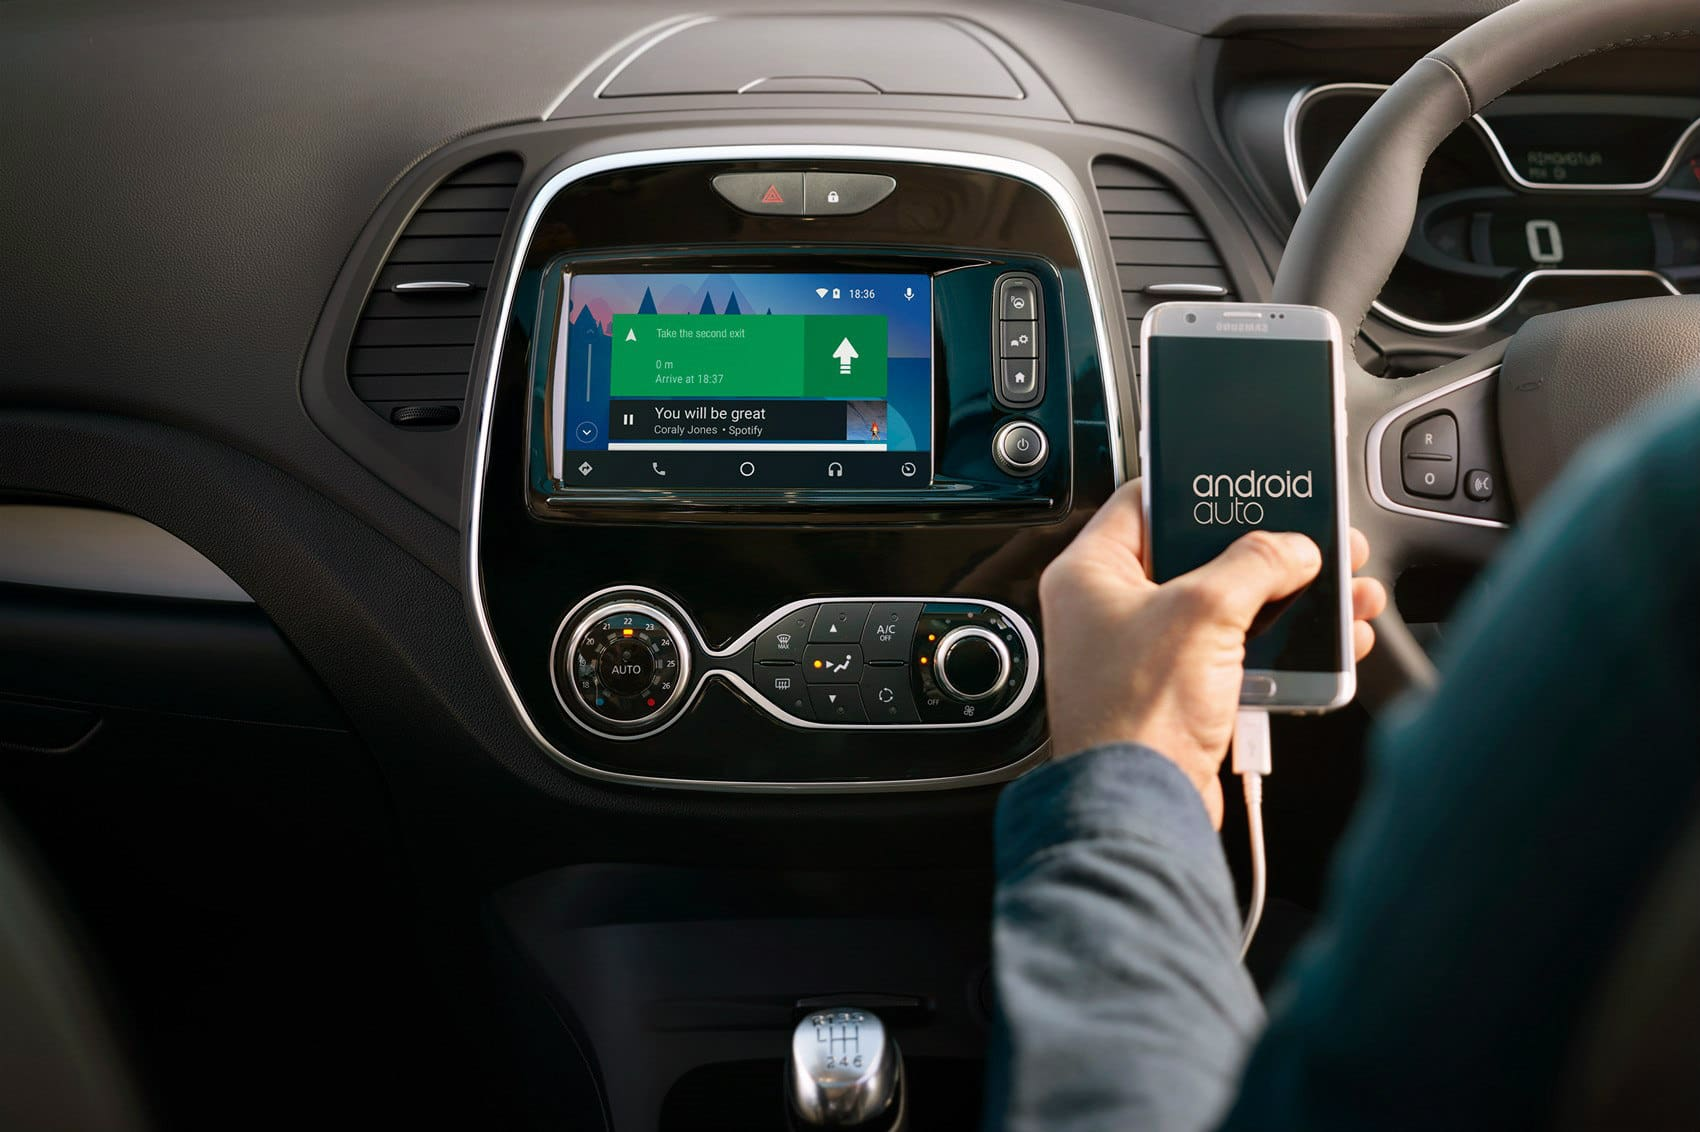 2019 Renault Duster, Captur Likely To Get Apple CarPlay, Android